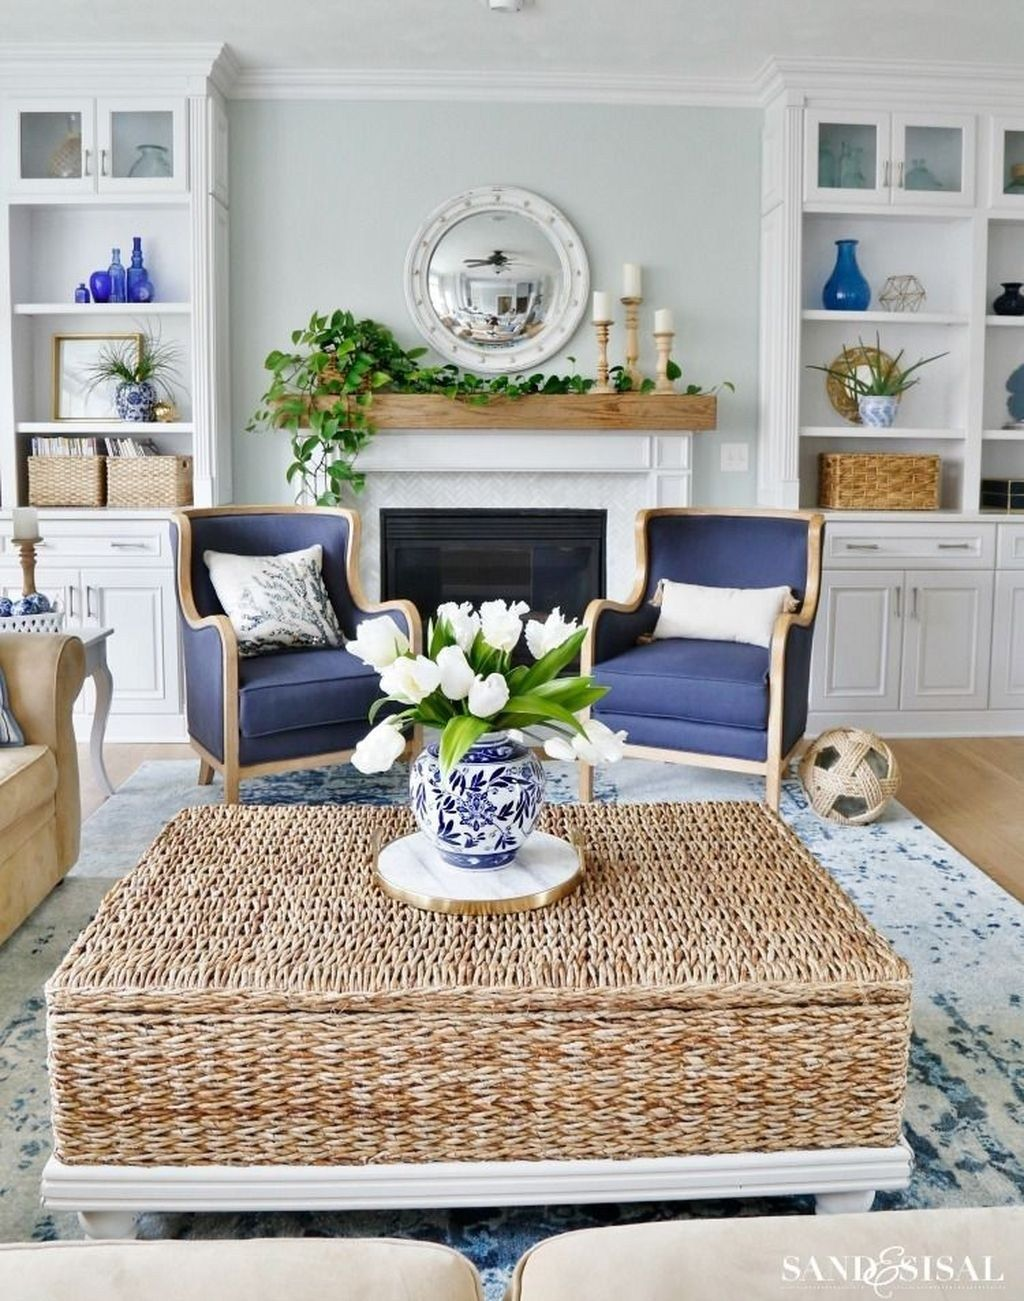 46 Affordable Blue And White Home Decor Ideas Best For Spring Time images